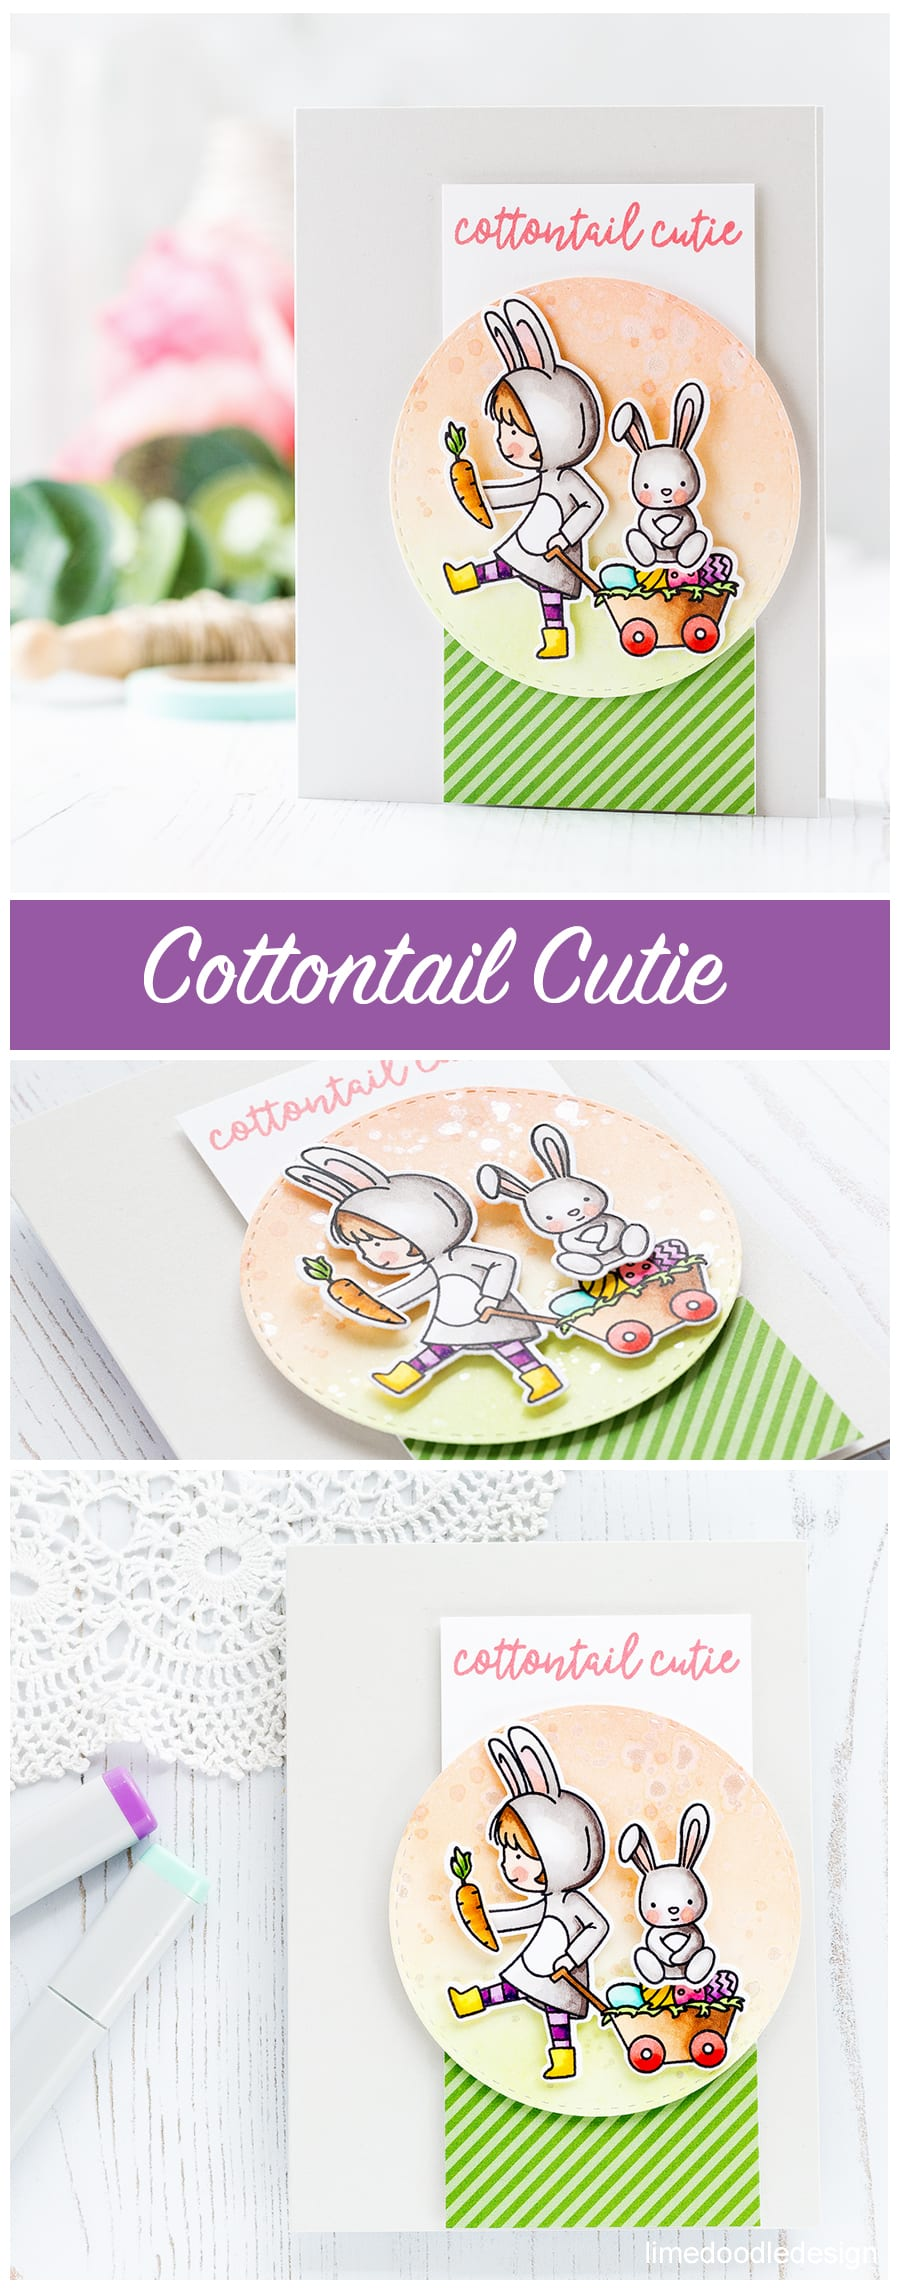 Cottontail cutie Easter/Spring/Bunny card by Debby Hughes. Find out more about this card here: http://limedoodledesign.com/2017/02/neat-tangled-cottontail-cuties/